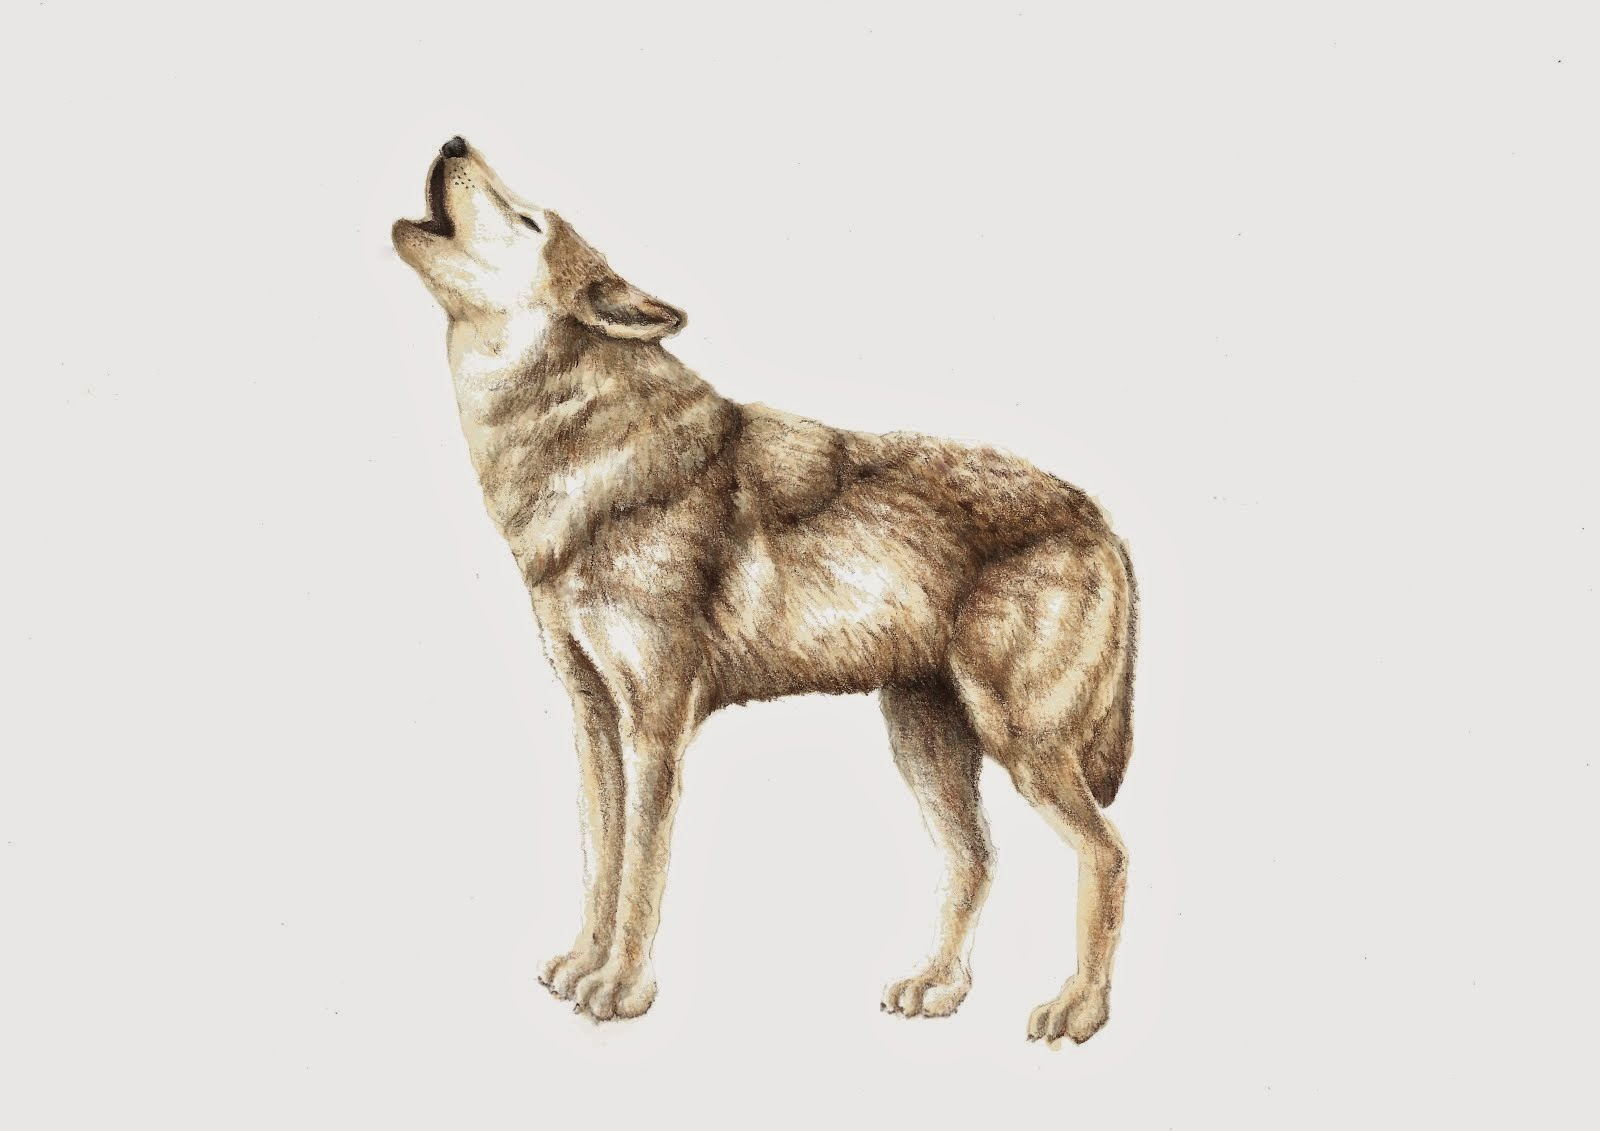 wolf scientific illustration by patricia garcia cruz